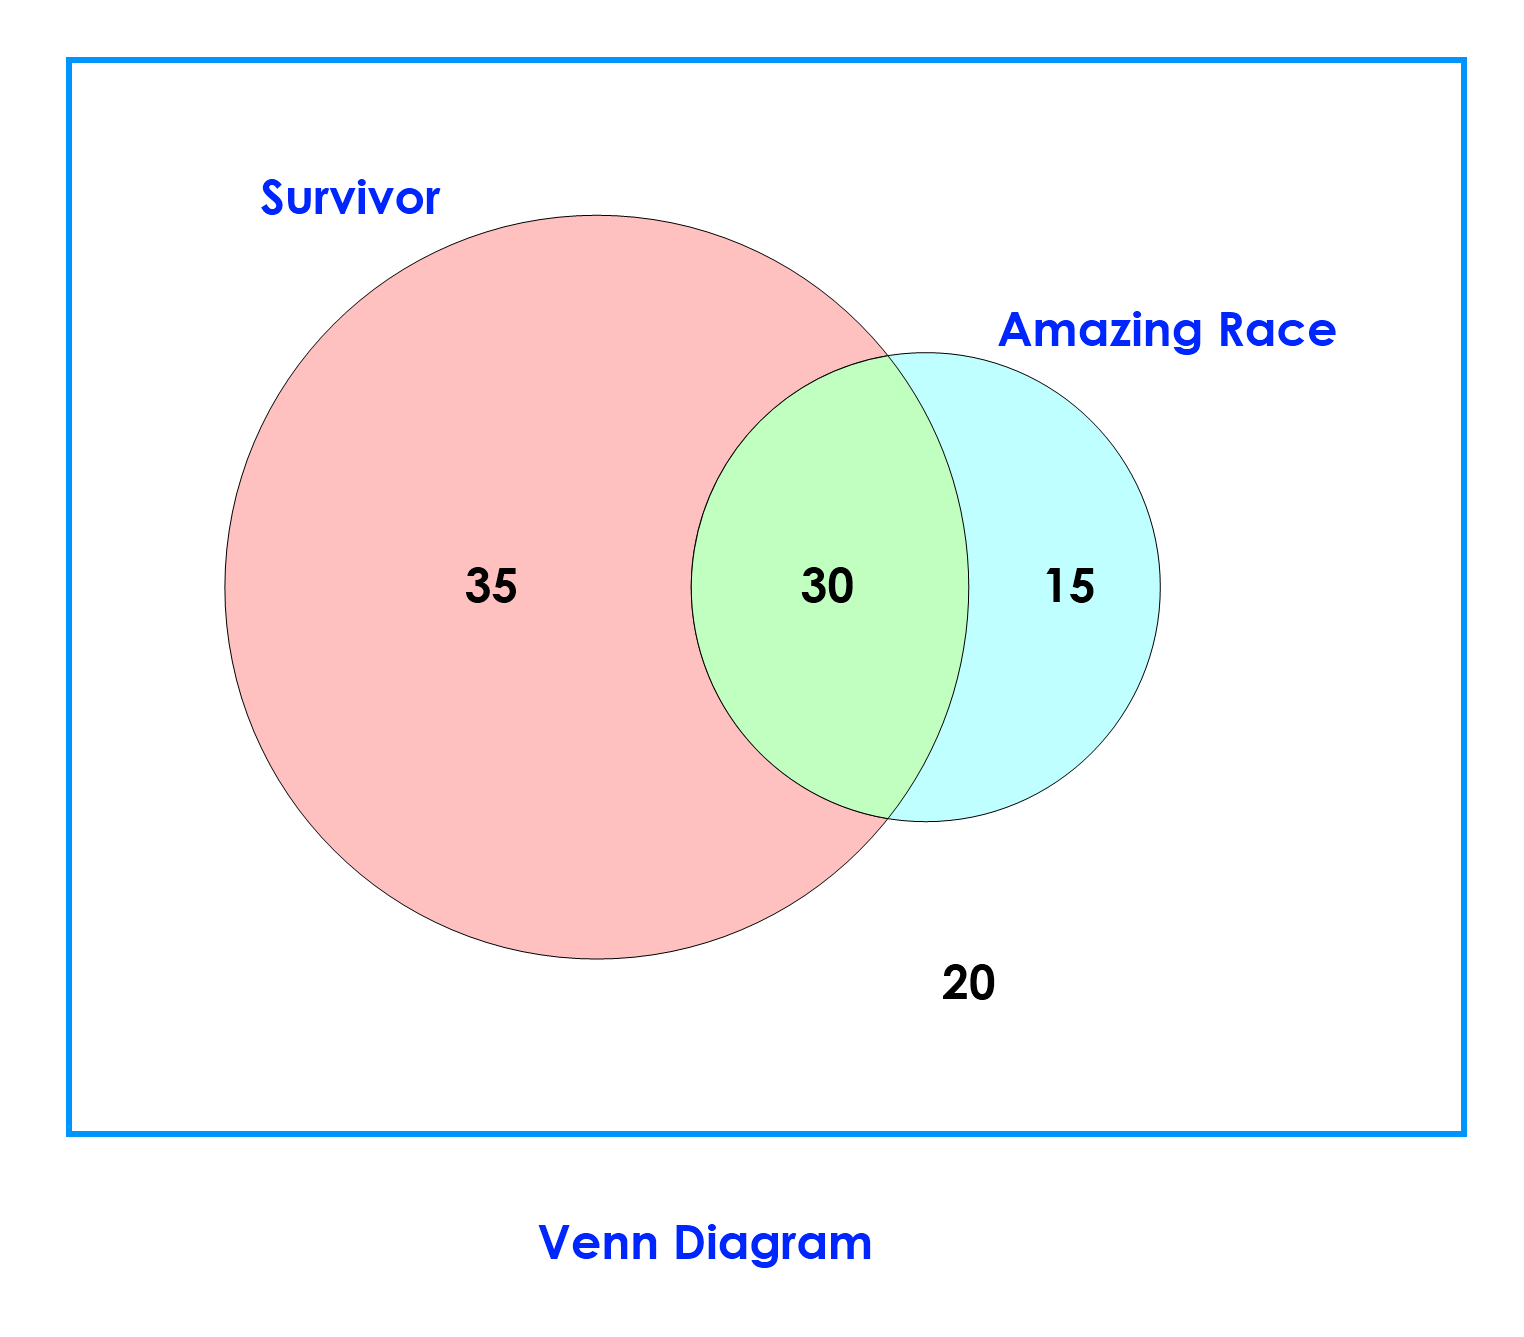 Venn Diagram showing student preferences for the reality shows 'Survivor' and 'Amazing Race'